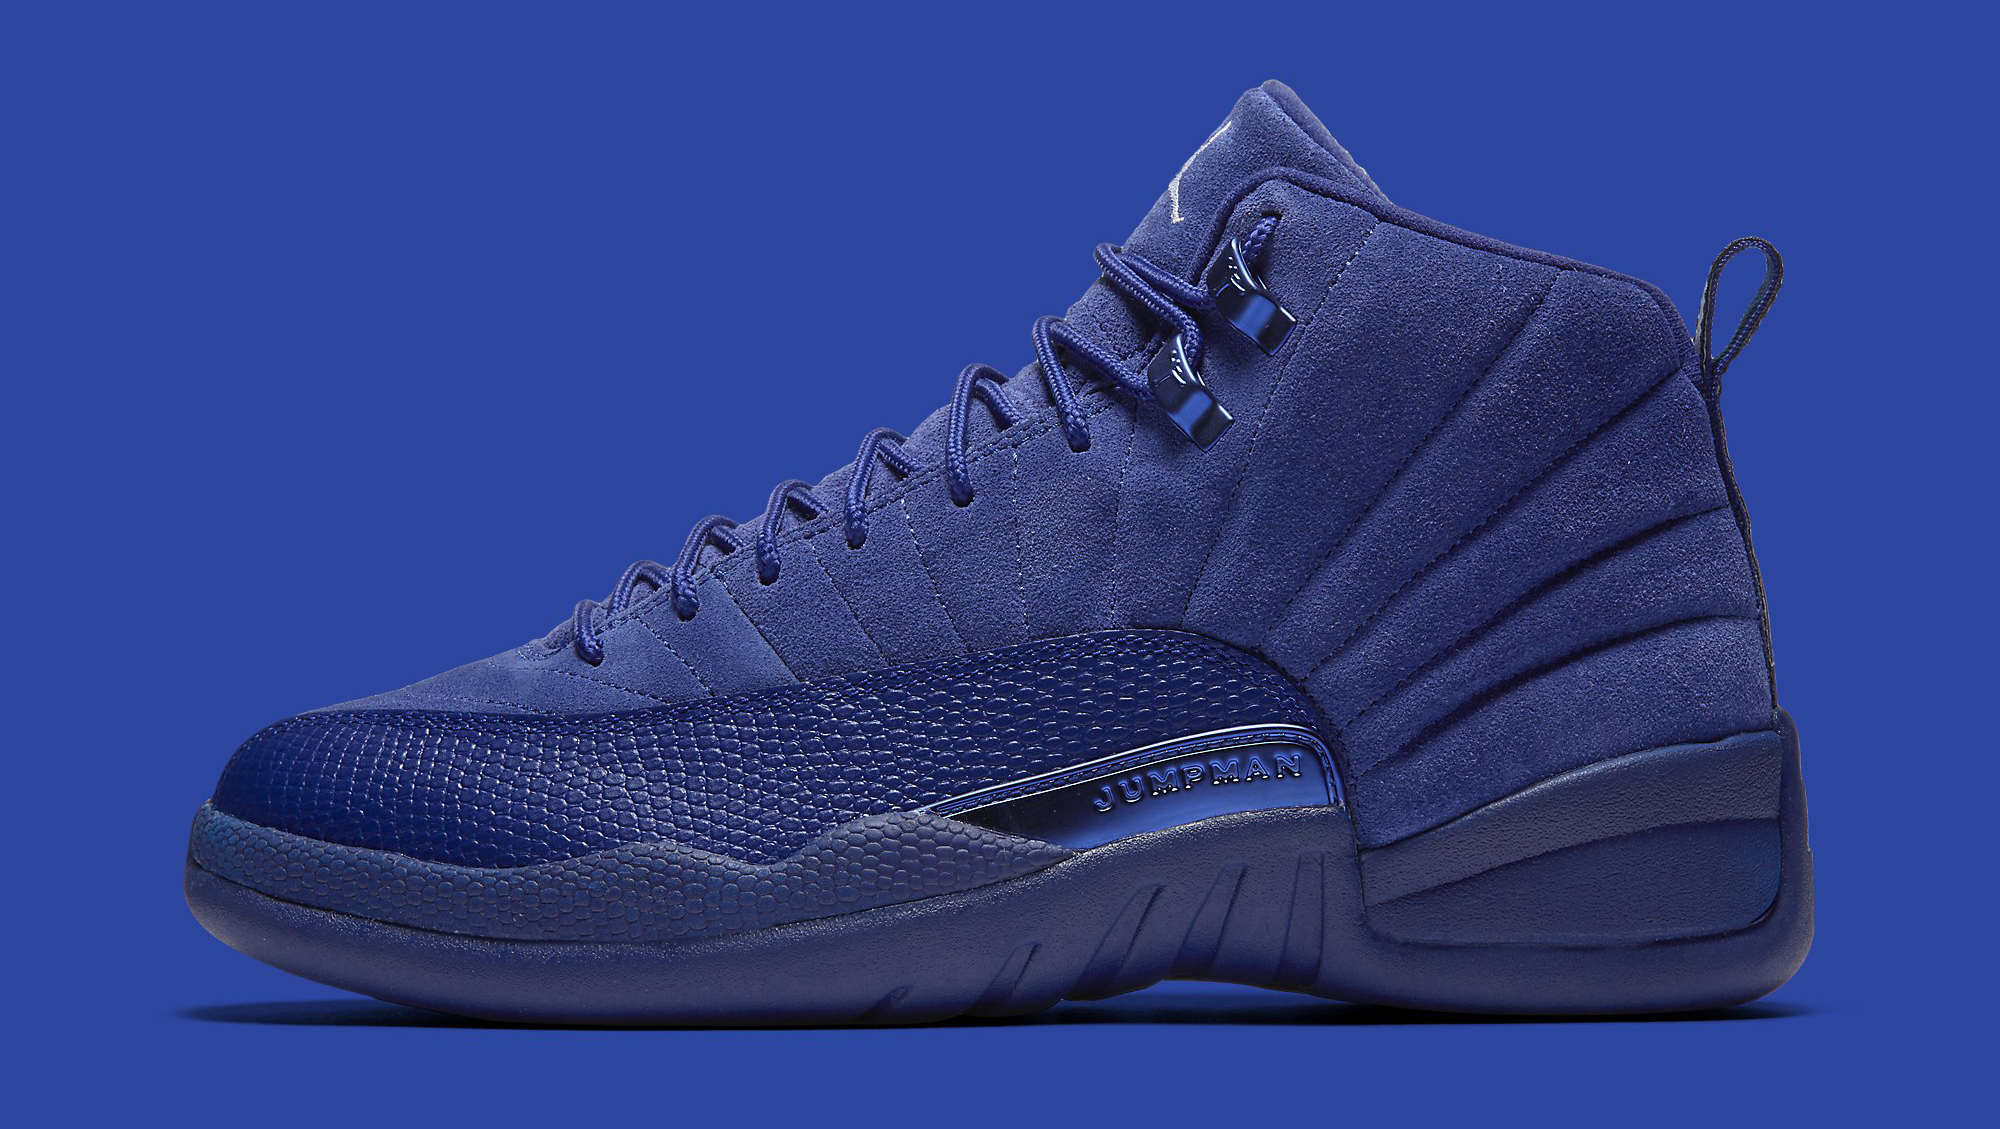 Blue Jordan 12 Profile